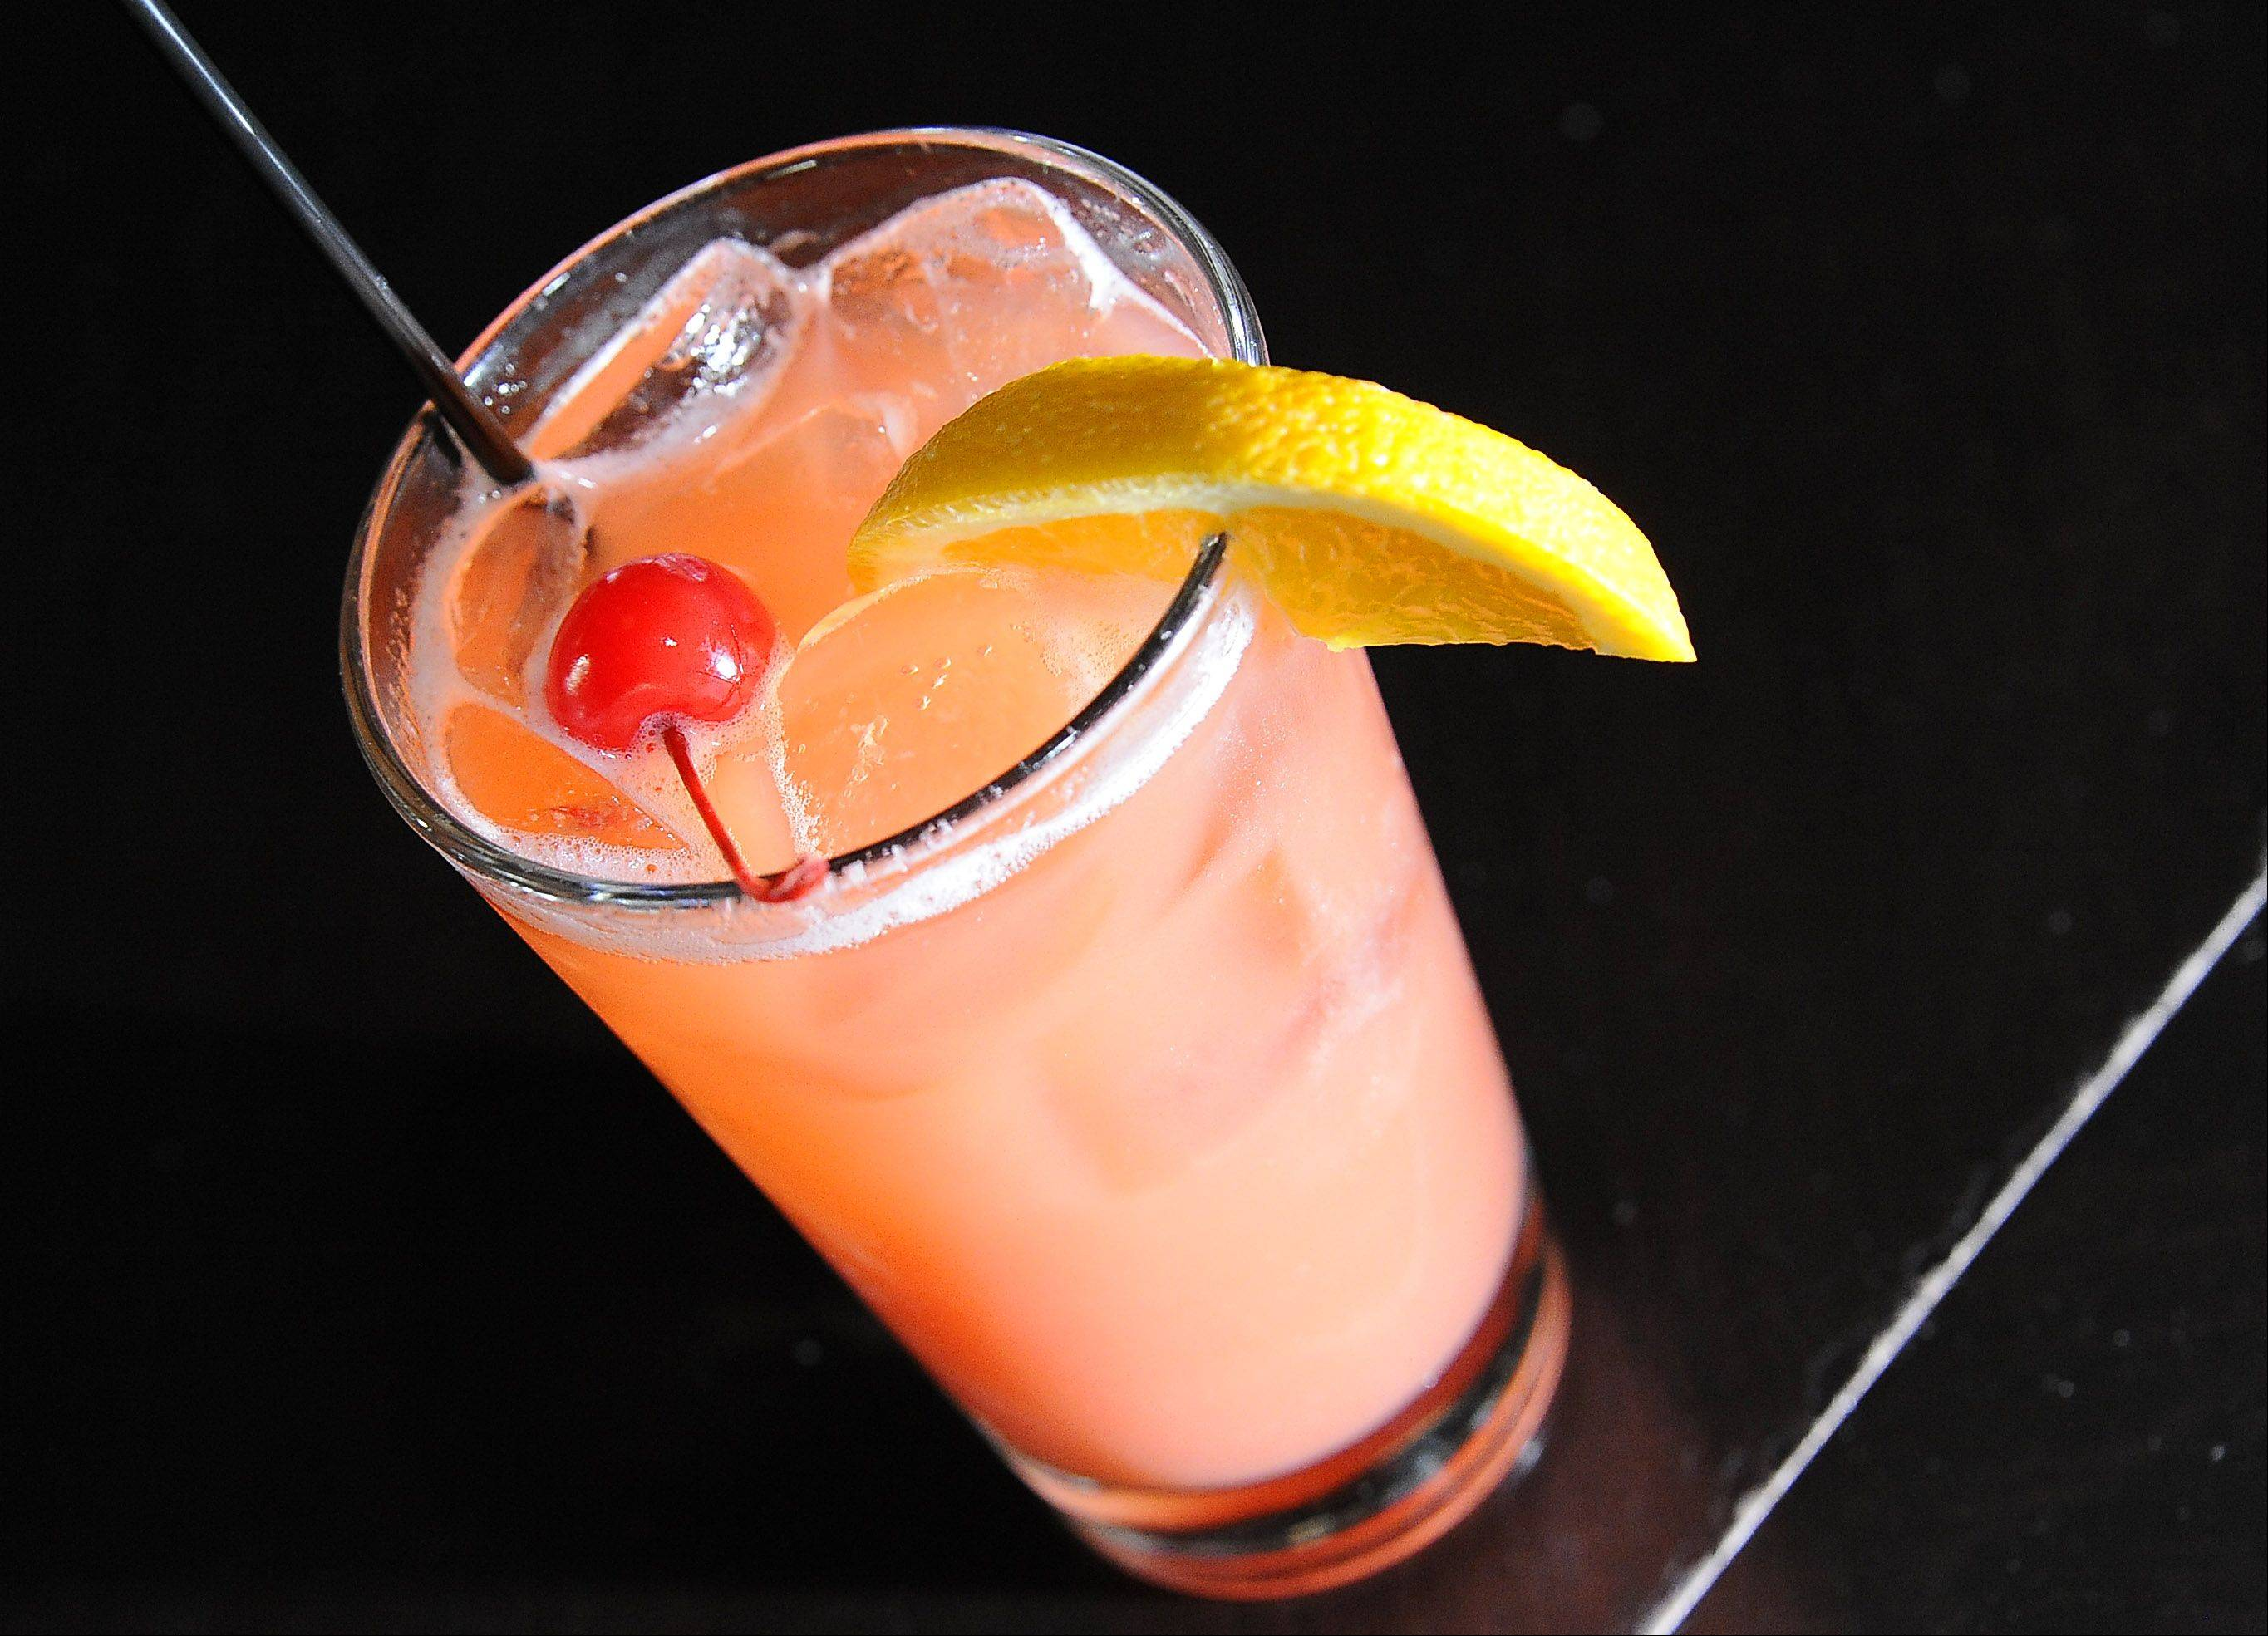 The Cardinal Punch is one of the summer drink options at Wickets Bar and Grill in Schaumburg.